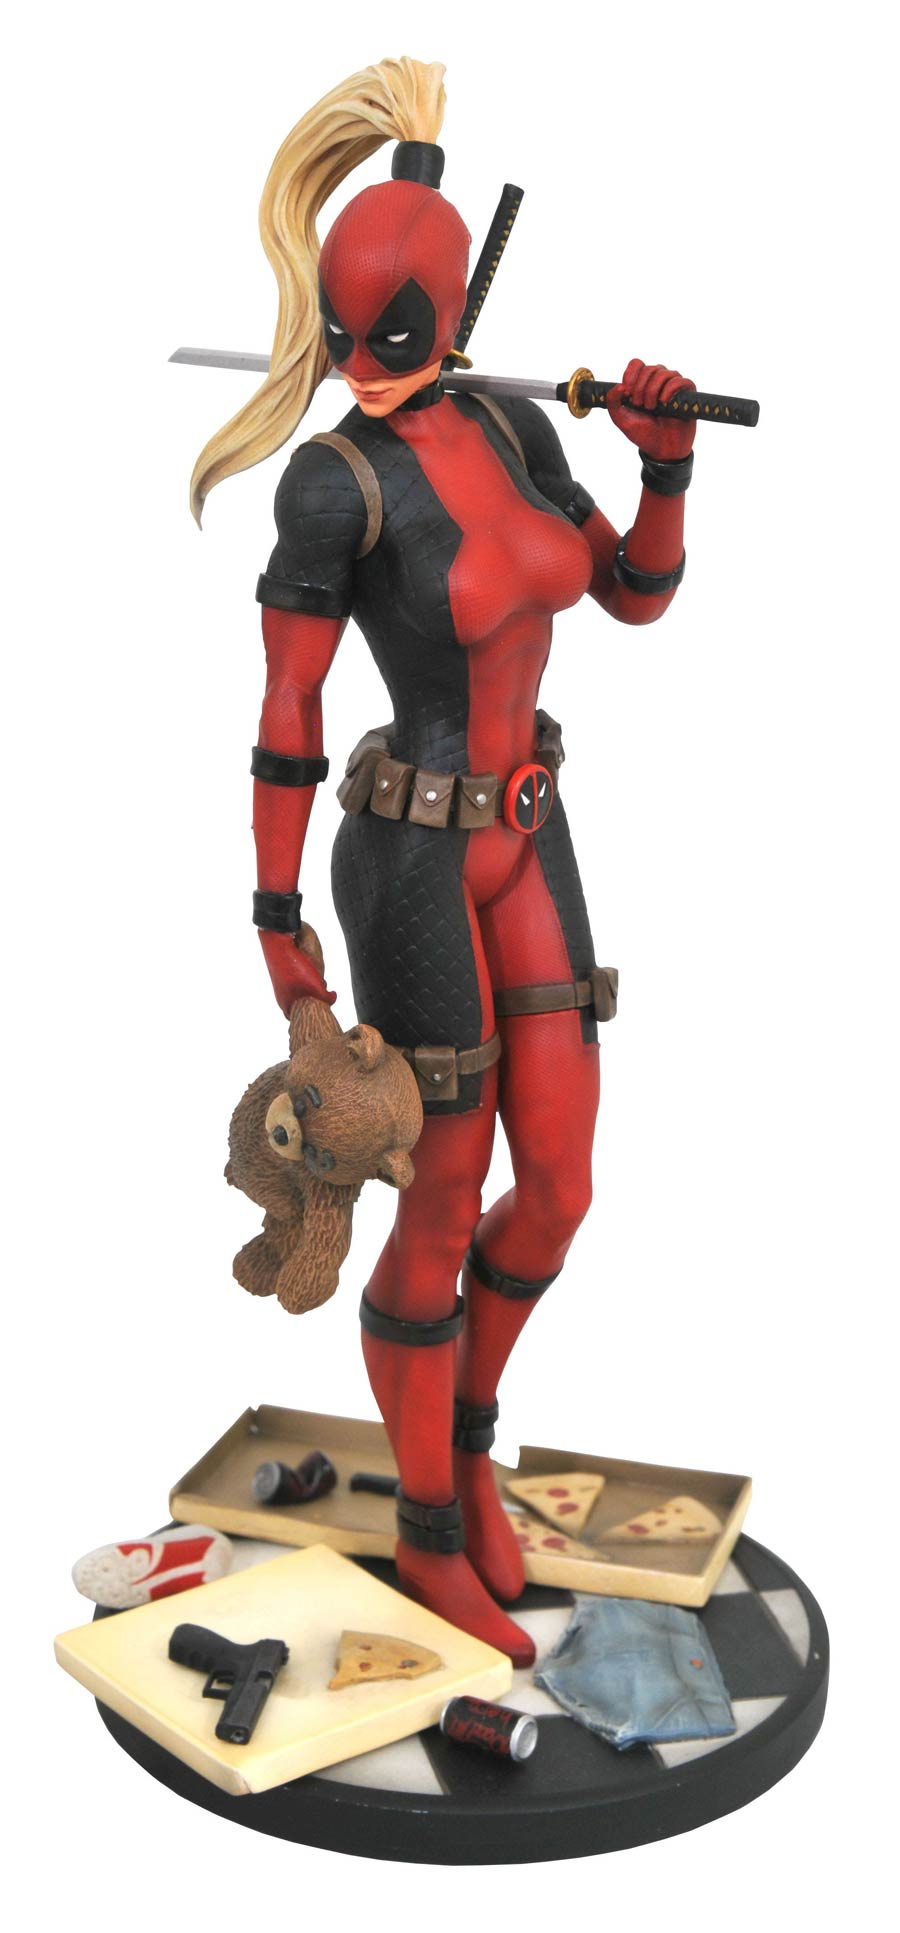 Marvel Comic Premier Collection Lady Deadpool Statue